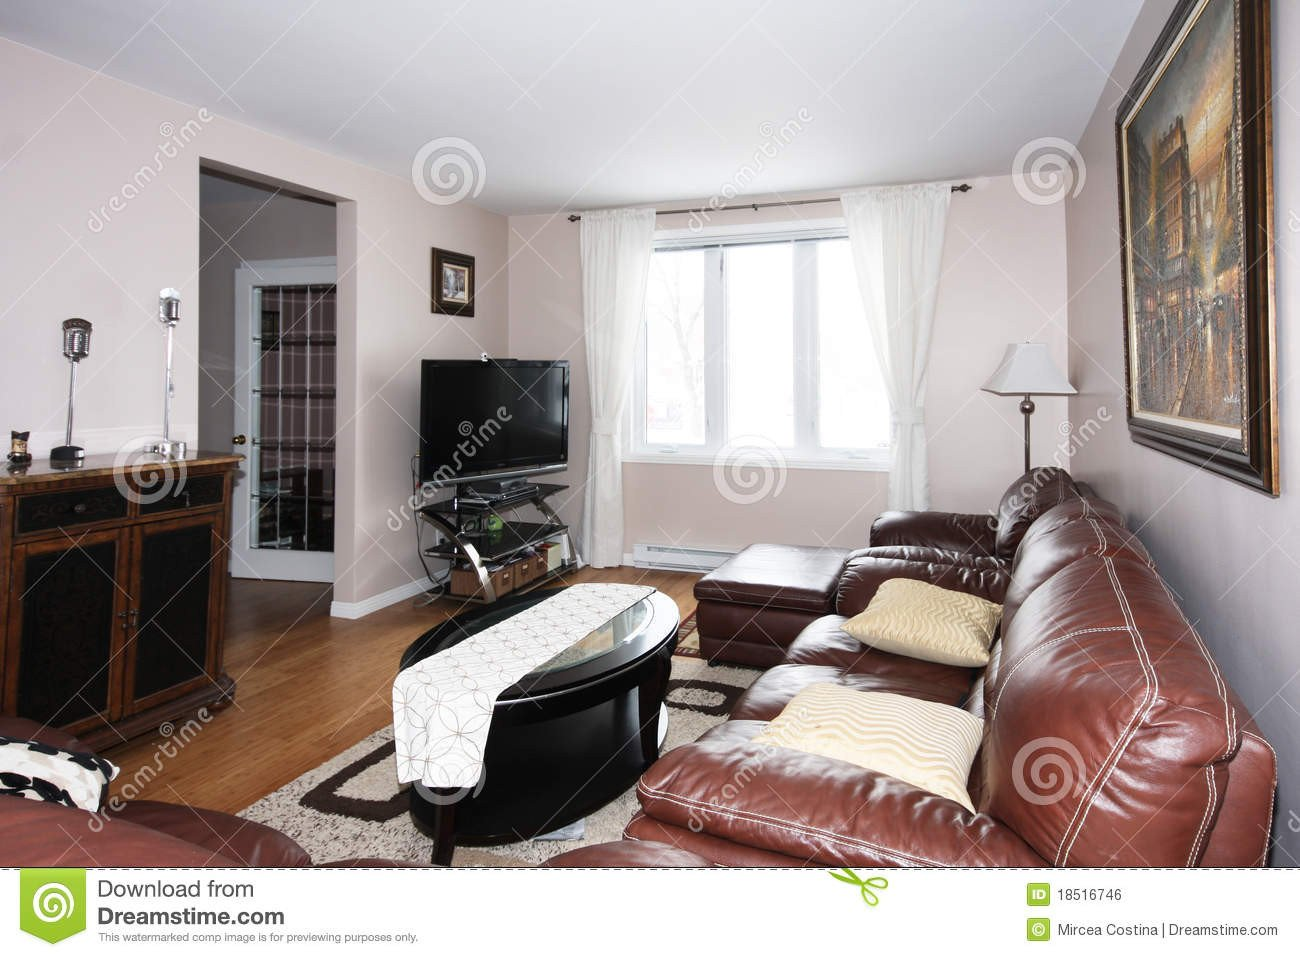 Country Comfortable Living Room fortable Living Room Royalty Free Stock Image Image